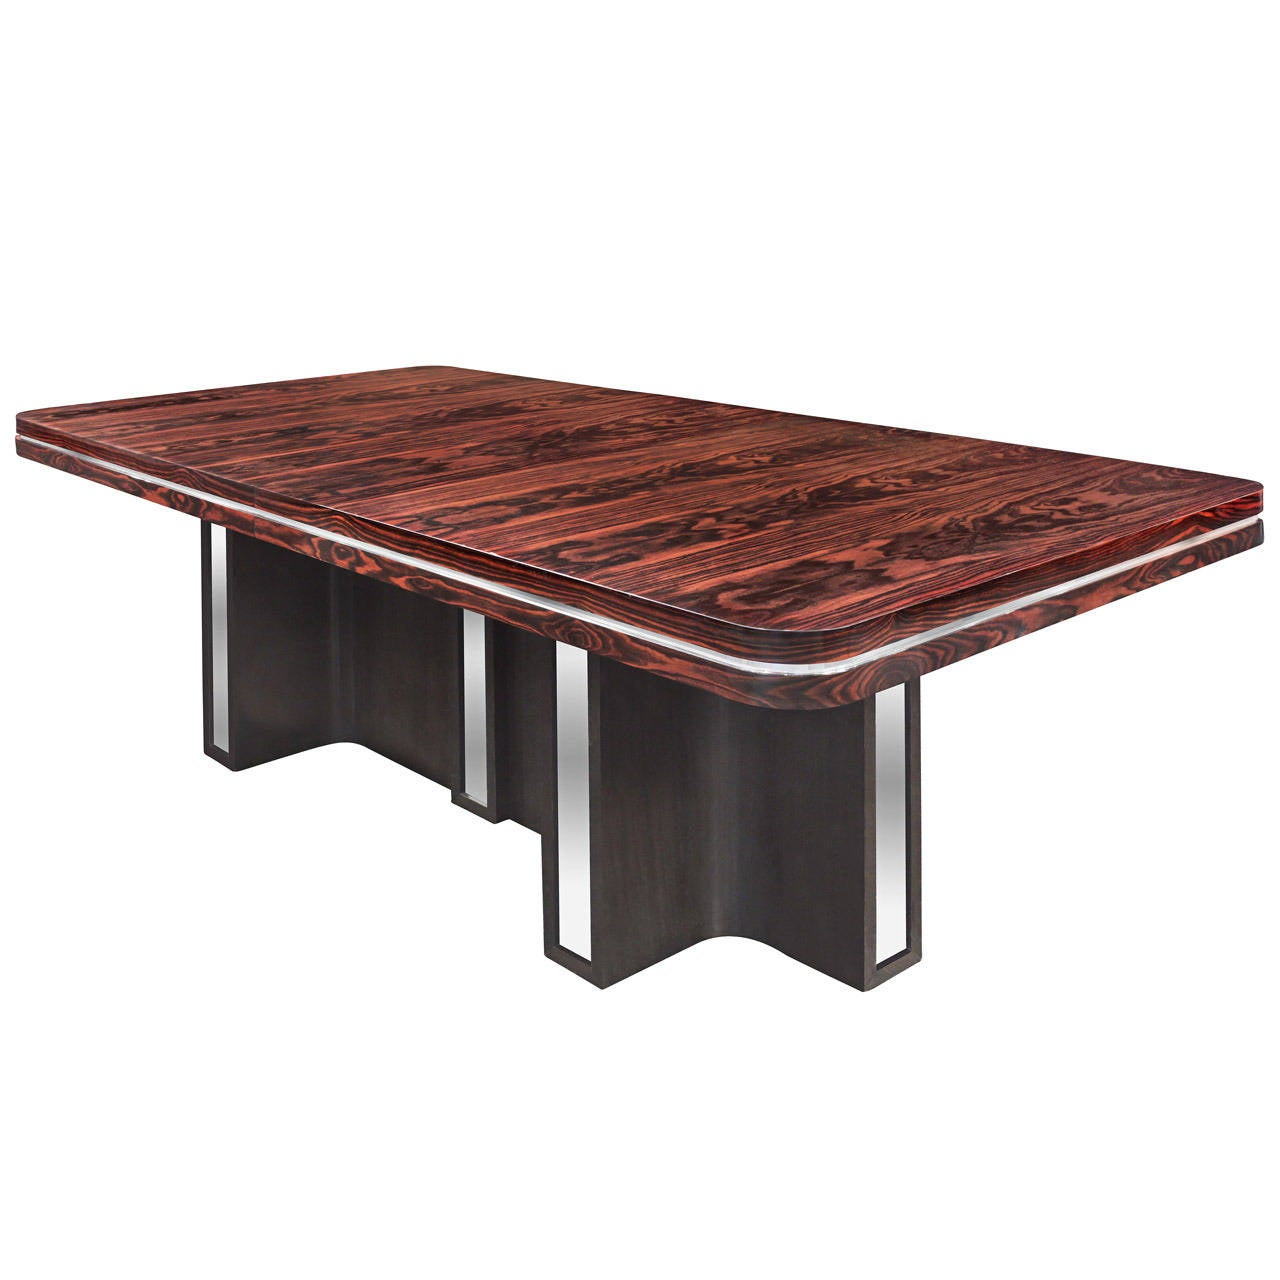 Exceptional Dining Table In Macassar Ebony By Tommi Parzinger 1